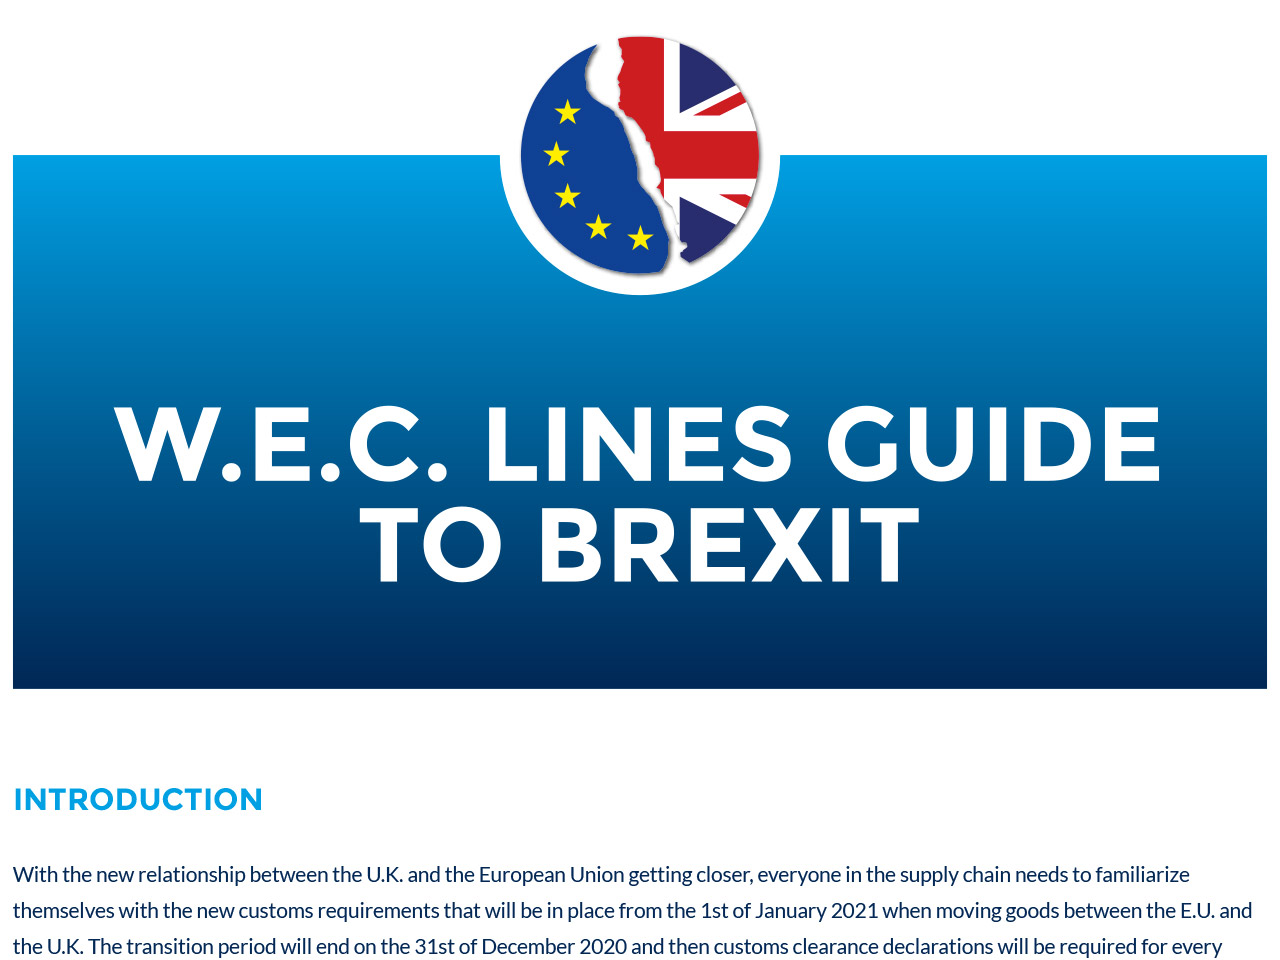 W.E.C. Lines guide to brexit